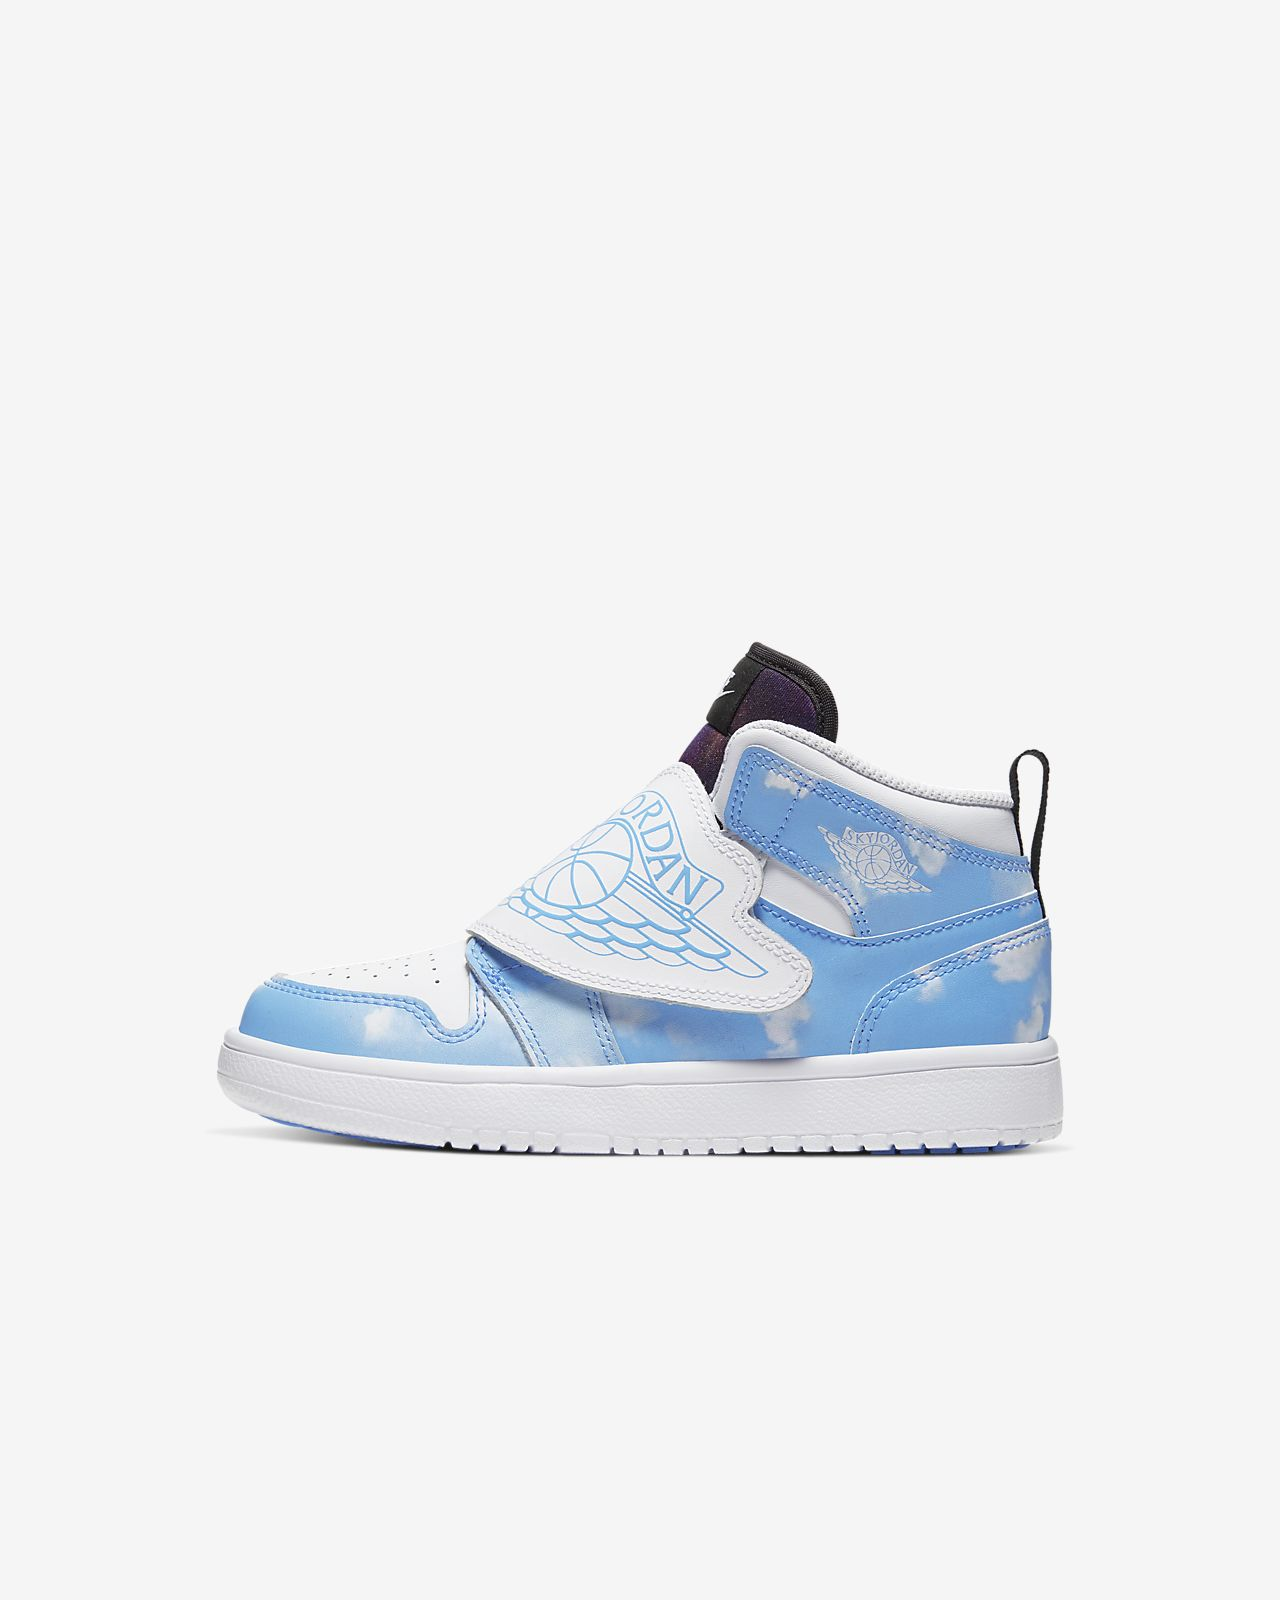 Sky Jordan 1 Fearless sko for små barn